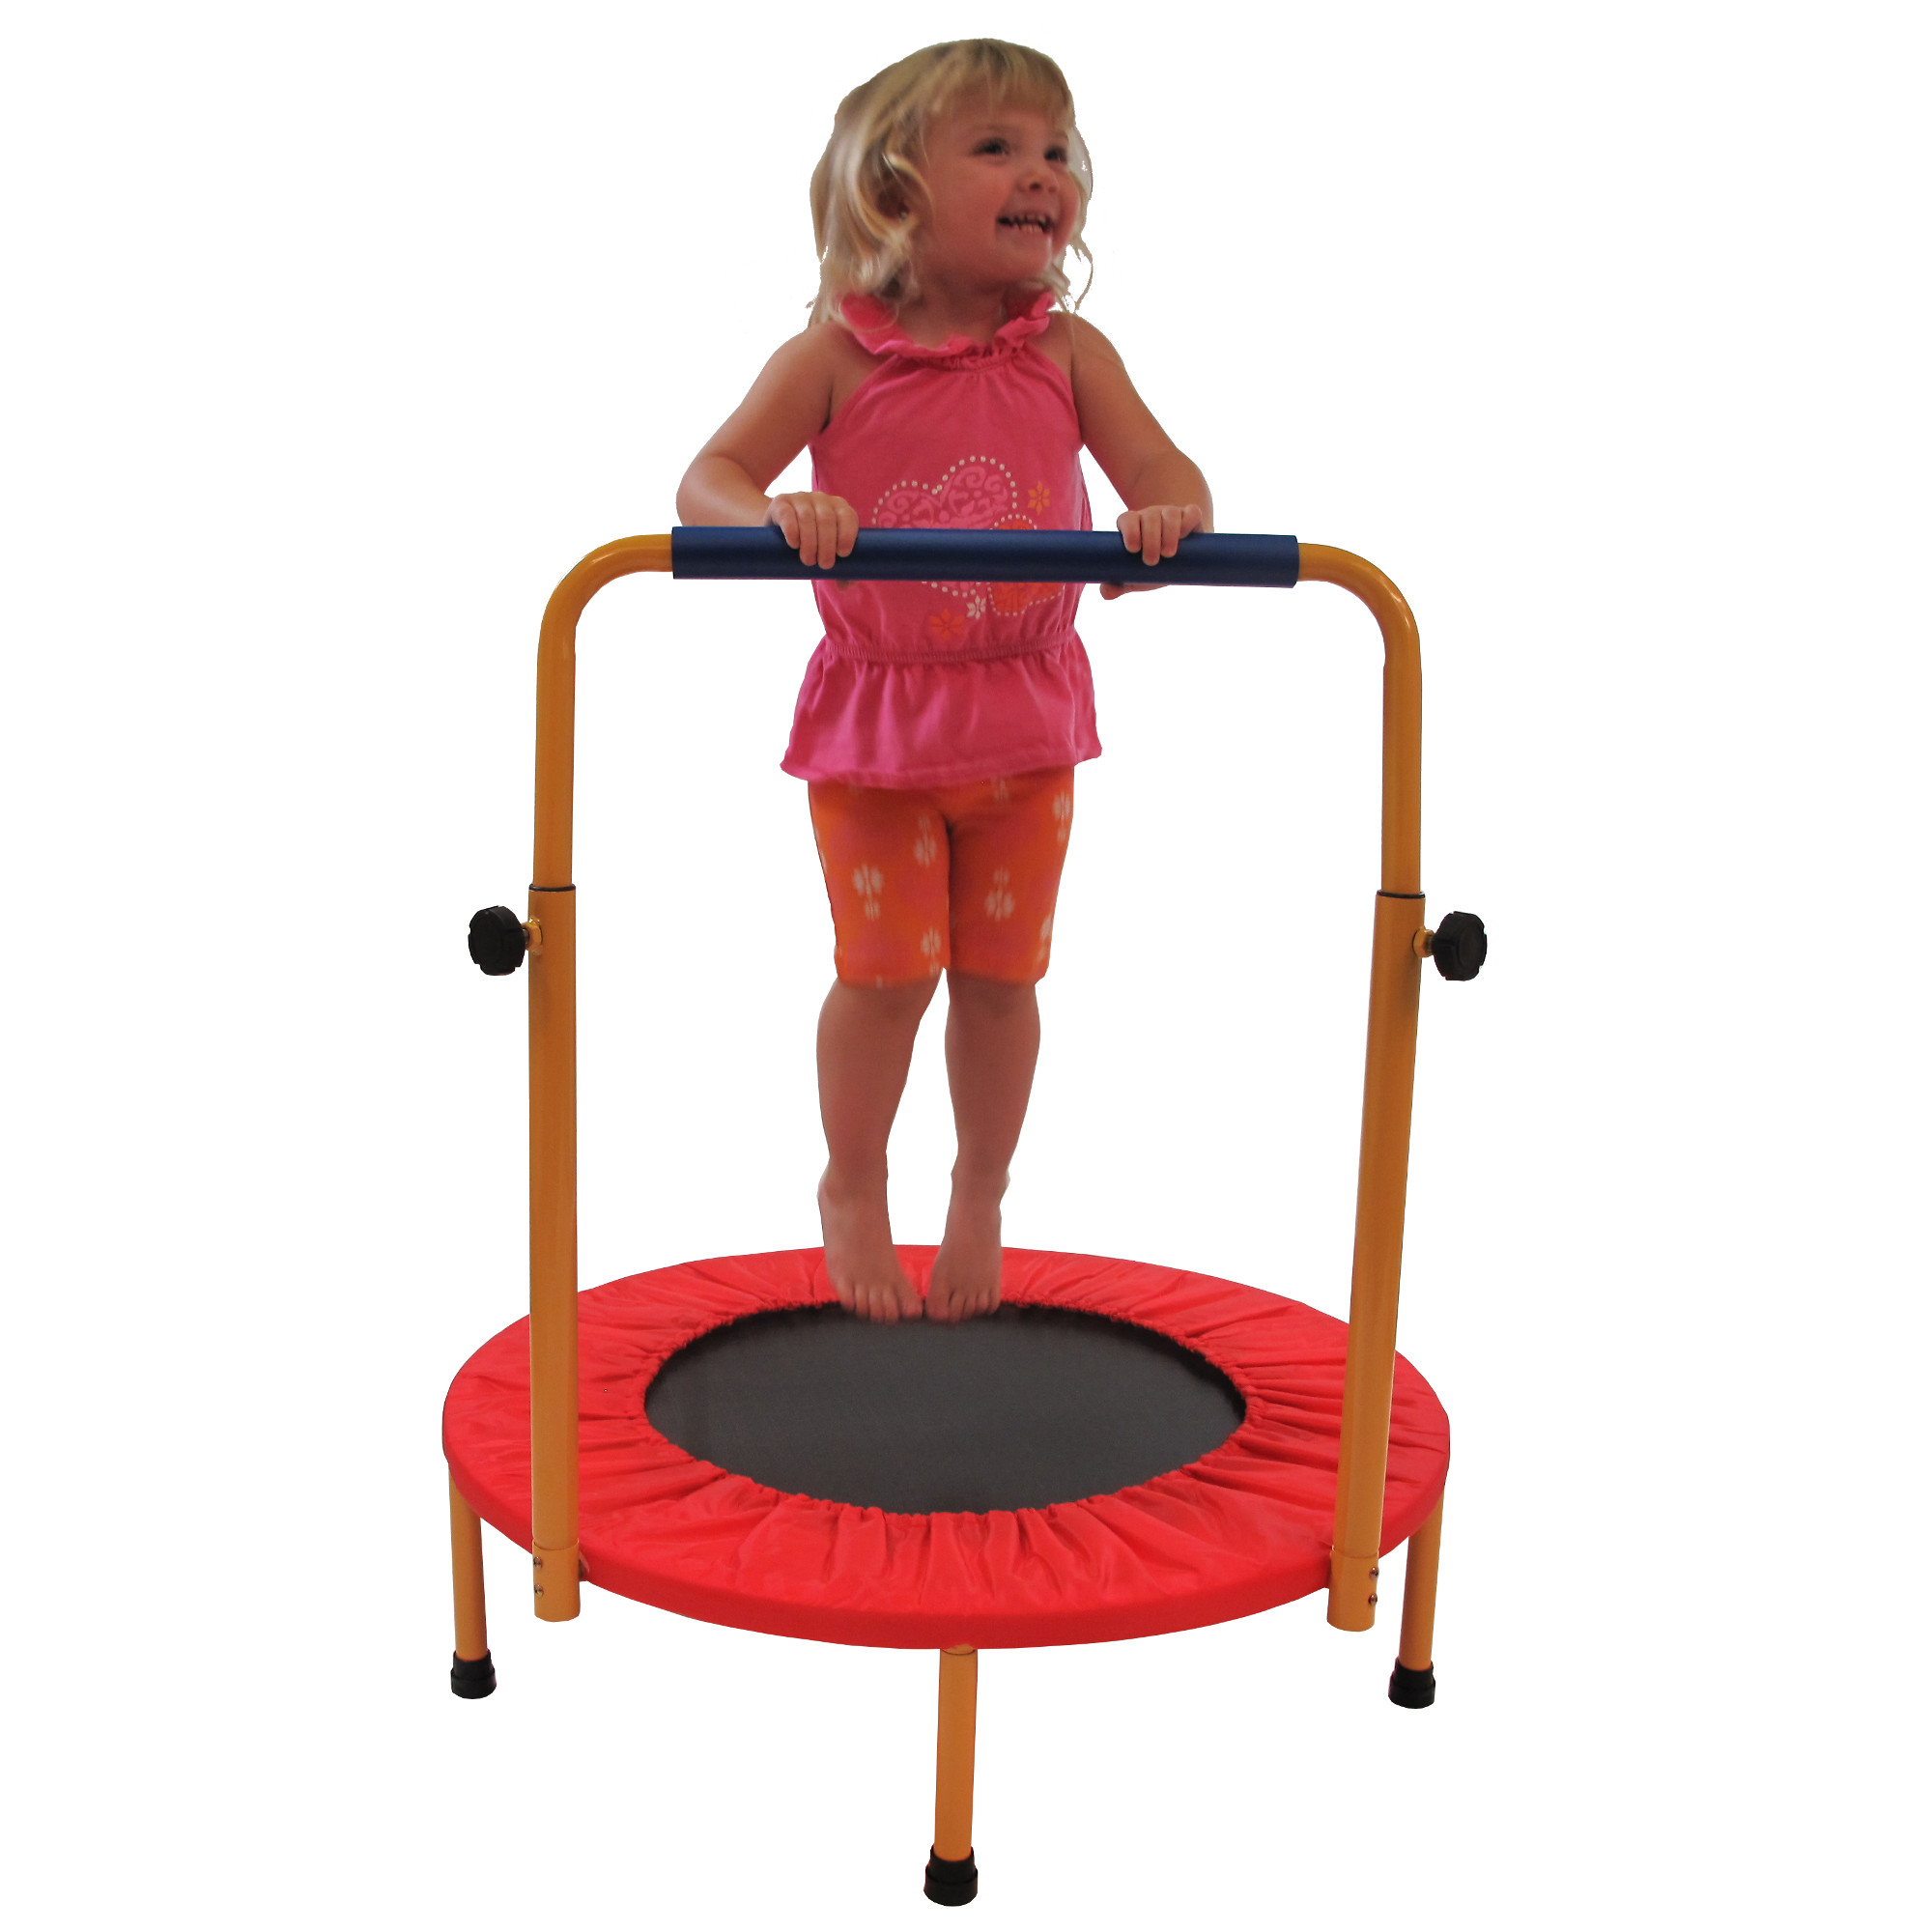 Fun and Fitness for Kids Trampoline by W.C. Redmon Co.